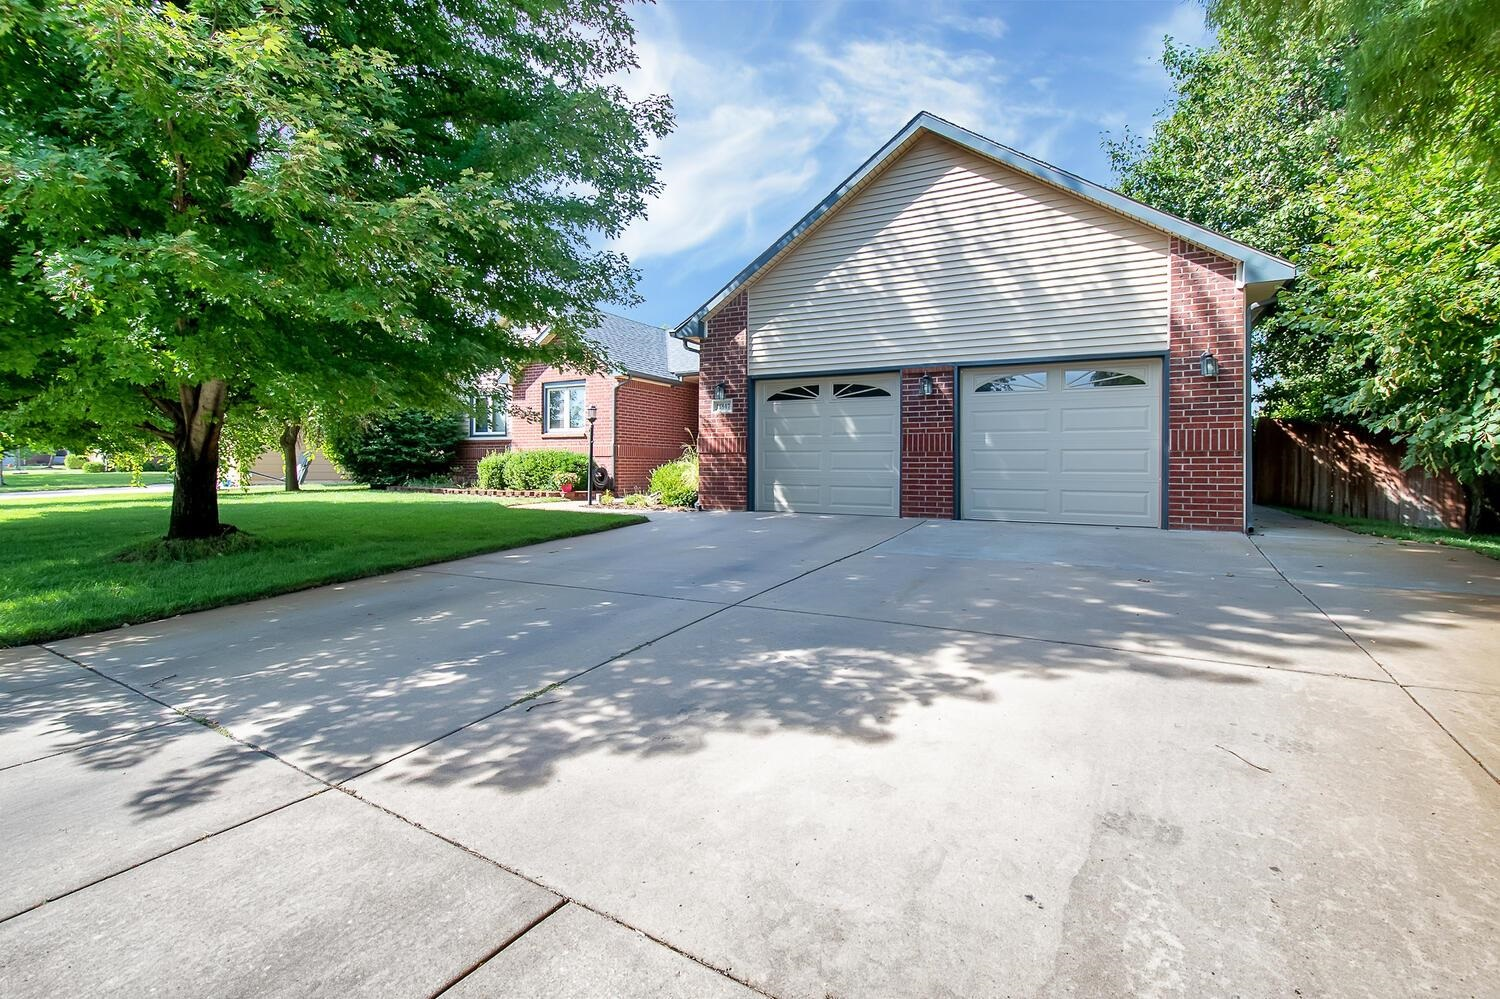 Run, don't walk to this home. 4 bedrooms, 3.5 baths and 2 car garage on a large corner lot just sout